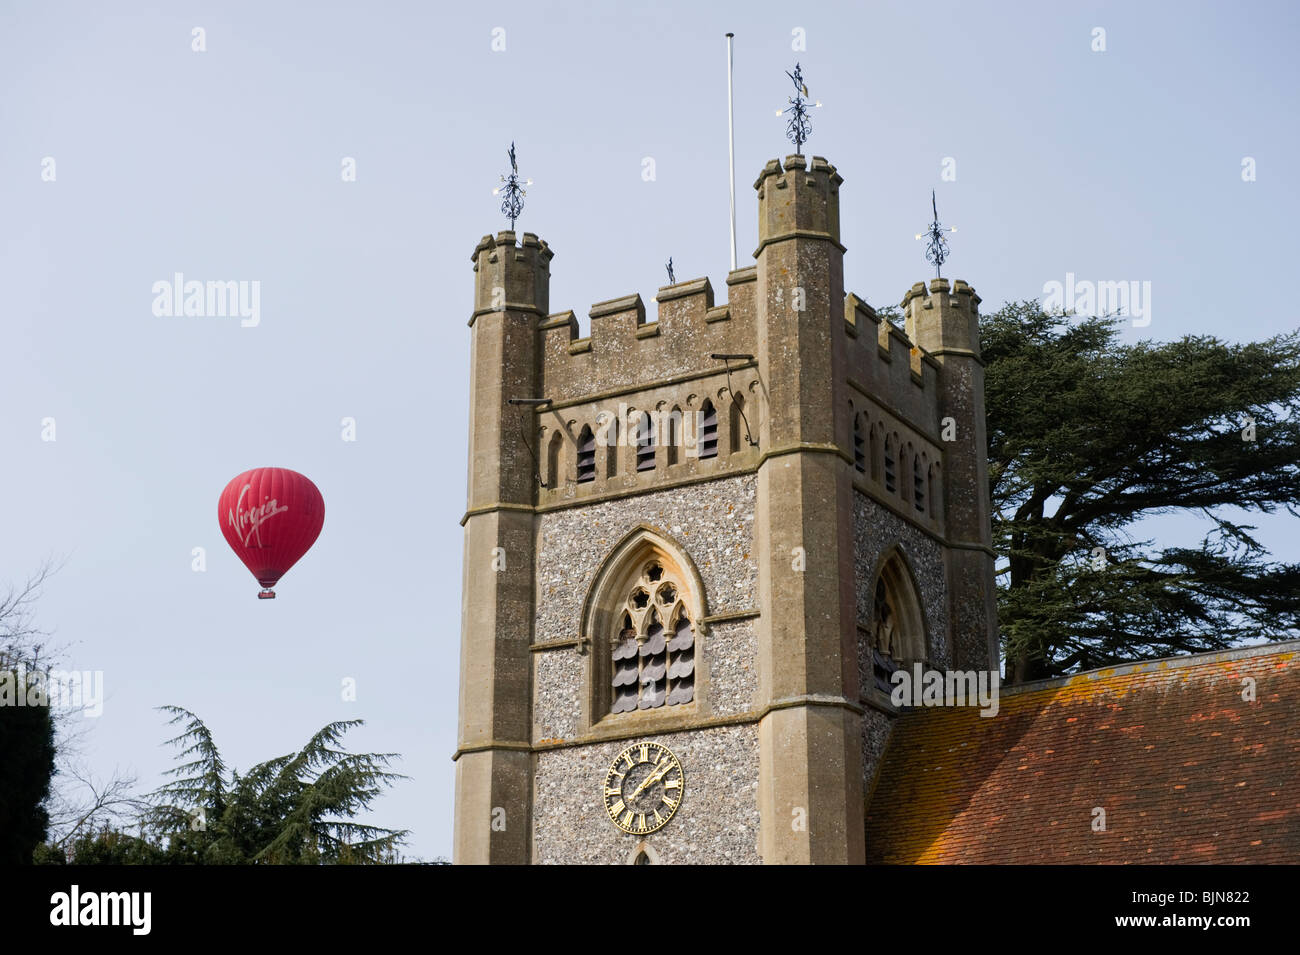 Virgin hot air balloon passing near to the church tower of St Mary the Virgin parish church of Hambleden Buckinghamshire - Stock Image